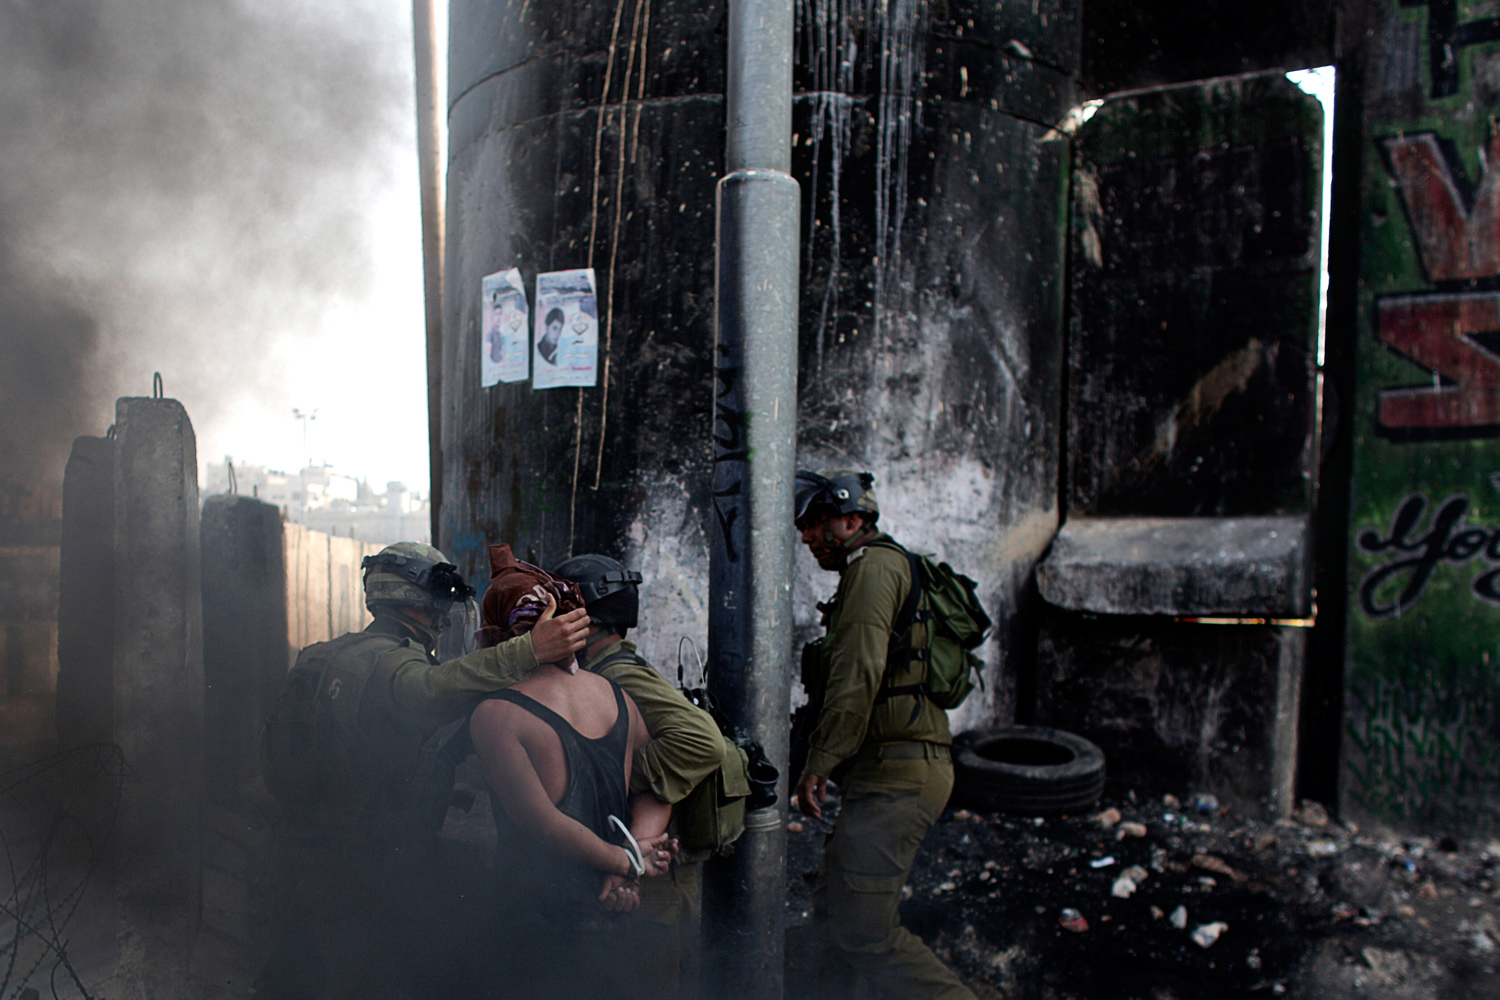 September 21, 2011. Israeli soldiers arrest a Palestinian demonstrator during clashes at the Qalandia checkpoint between the West Bank city of Ramallah and Jerusalem.